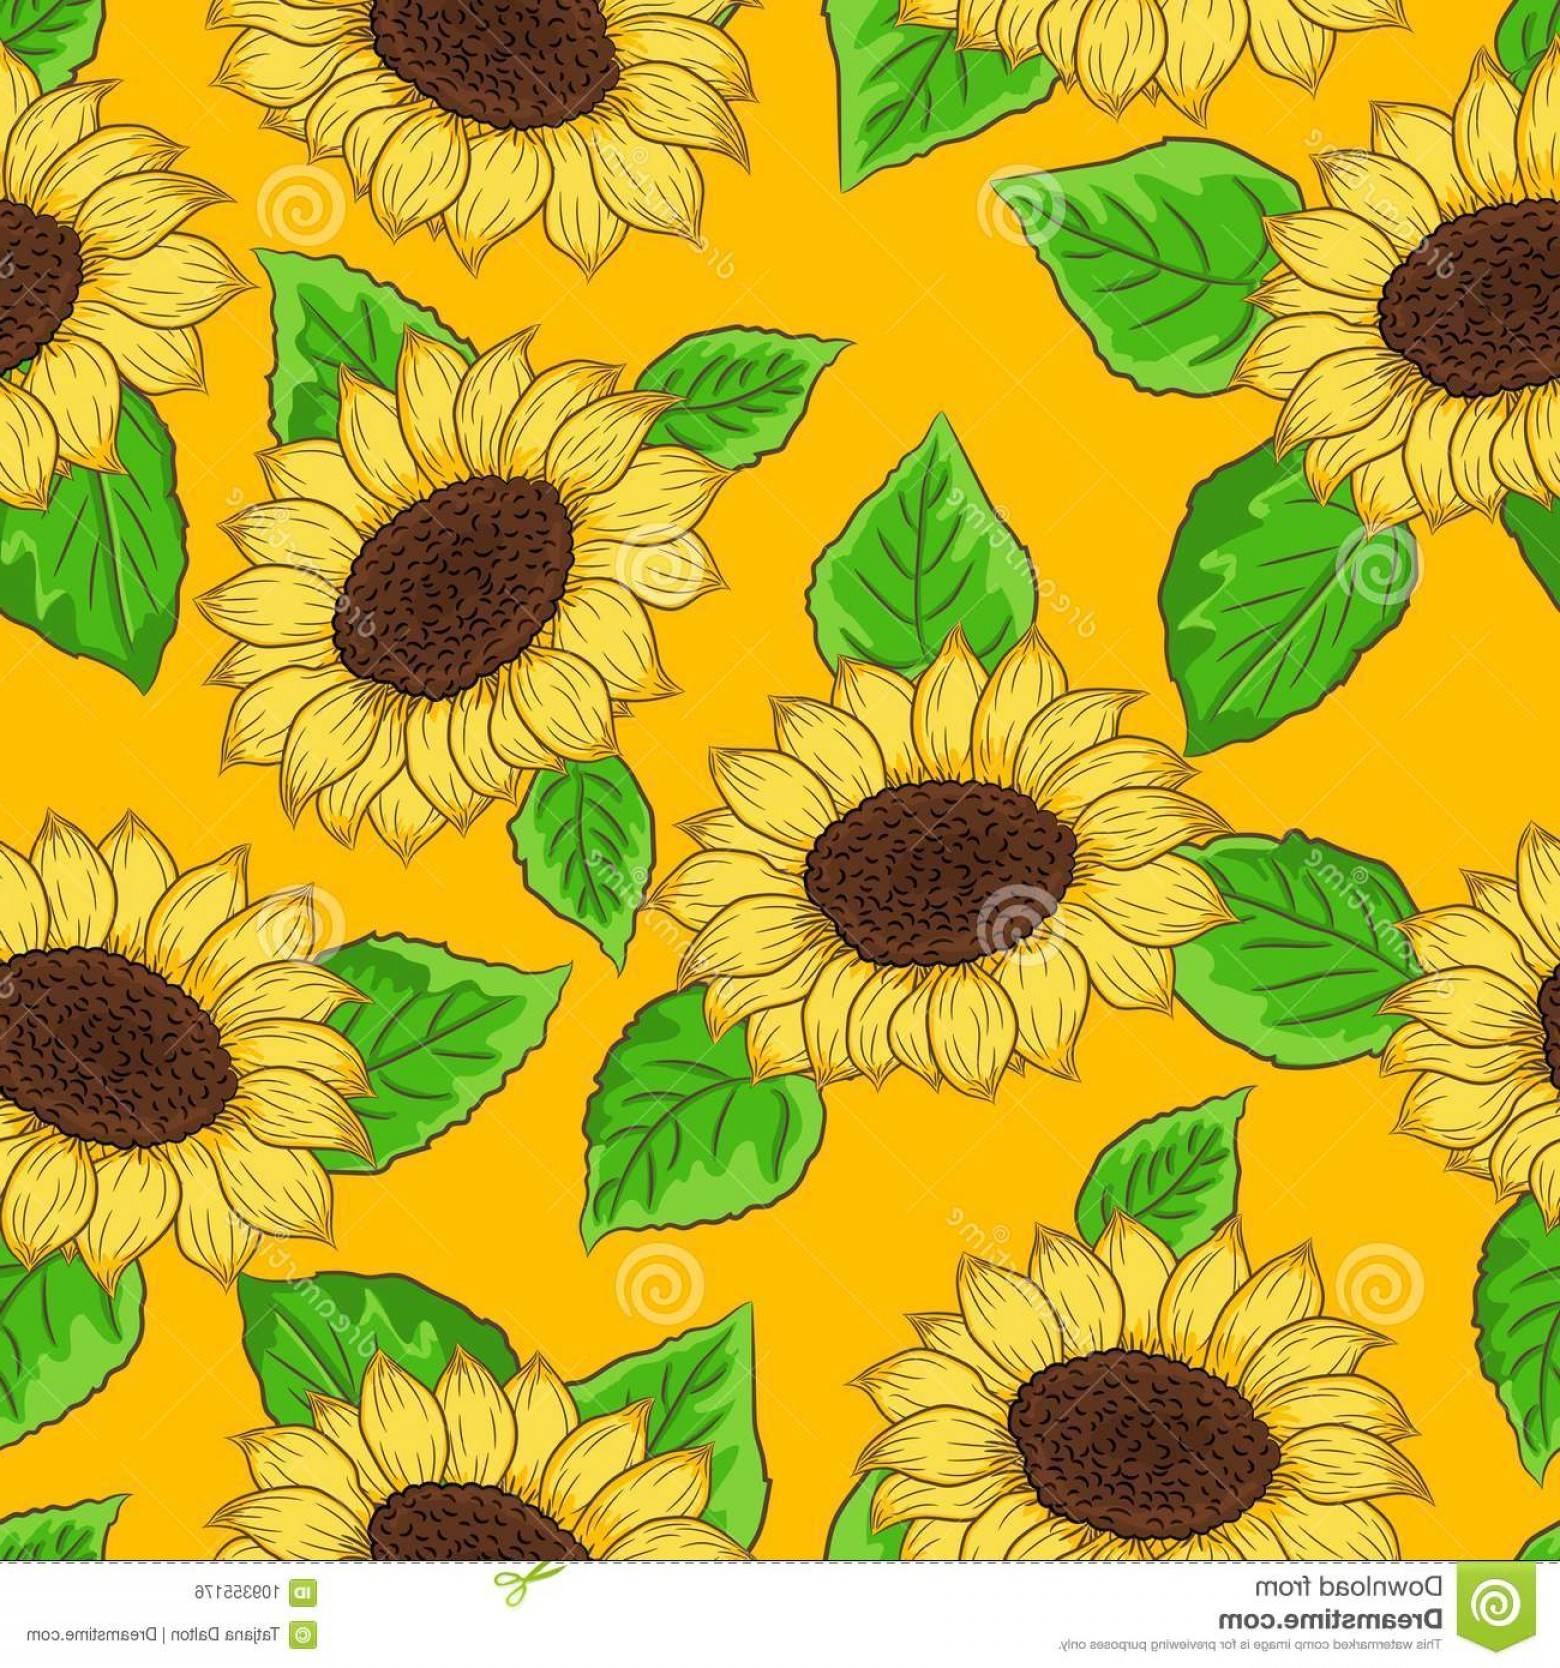 Sunflower Vector Pattern: Seamless Pattern Sunflower Vector Green Leaves Yellow Sun Background Image